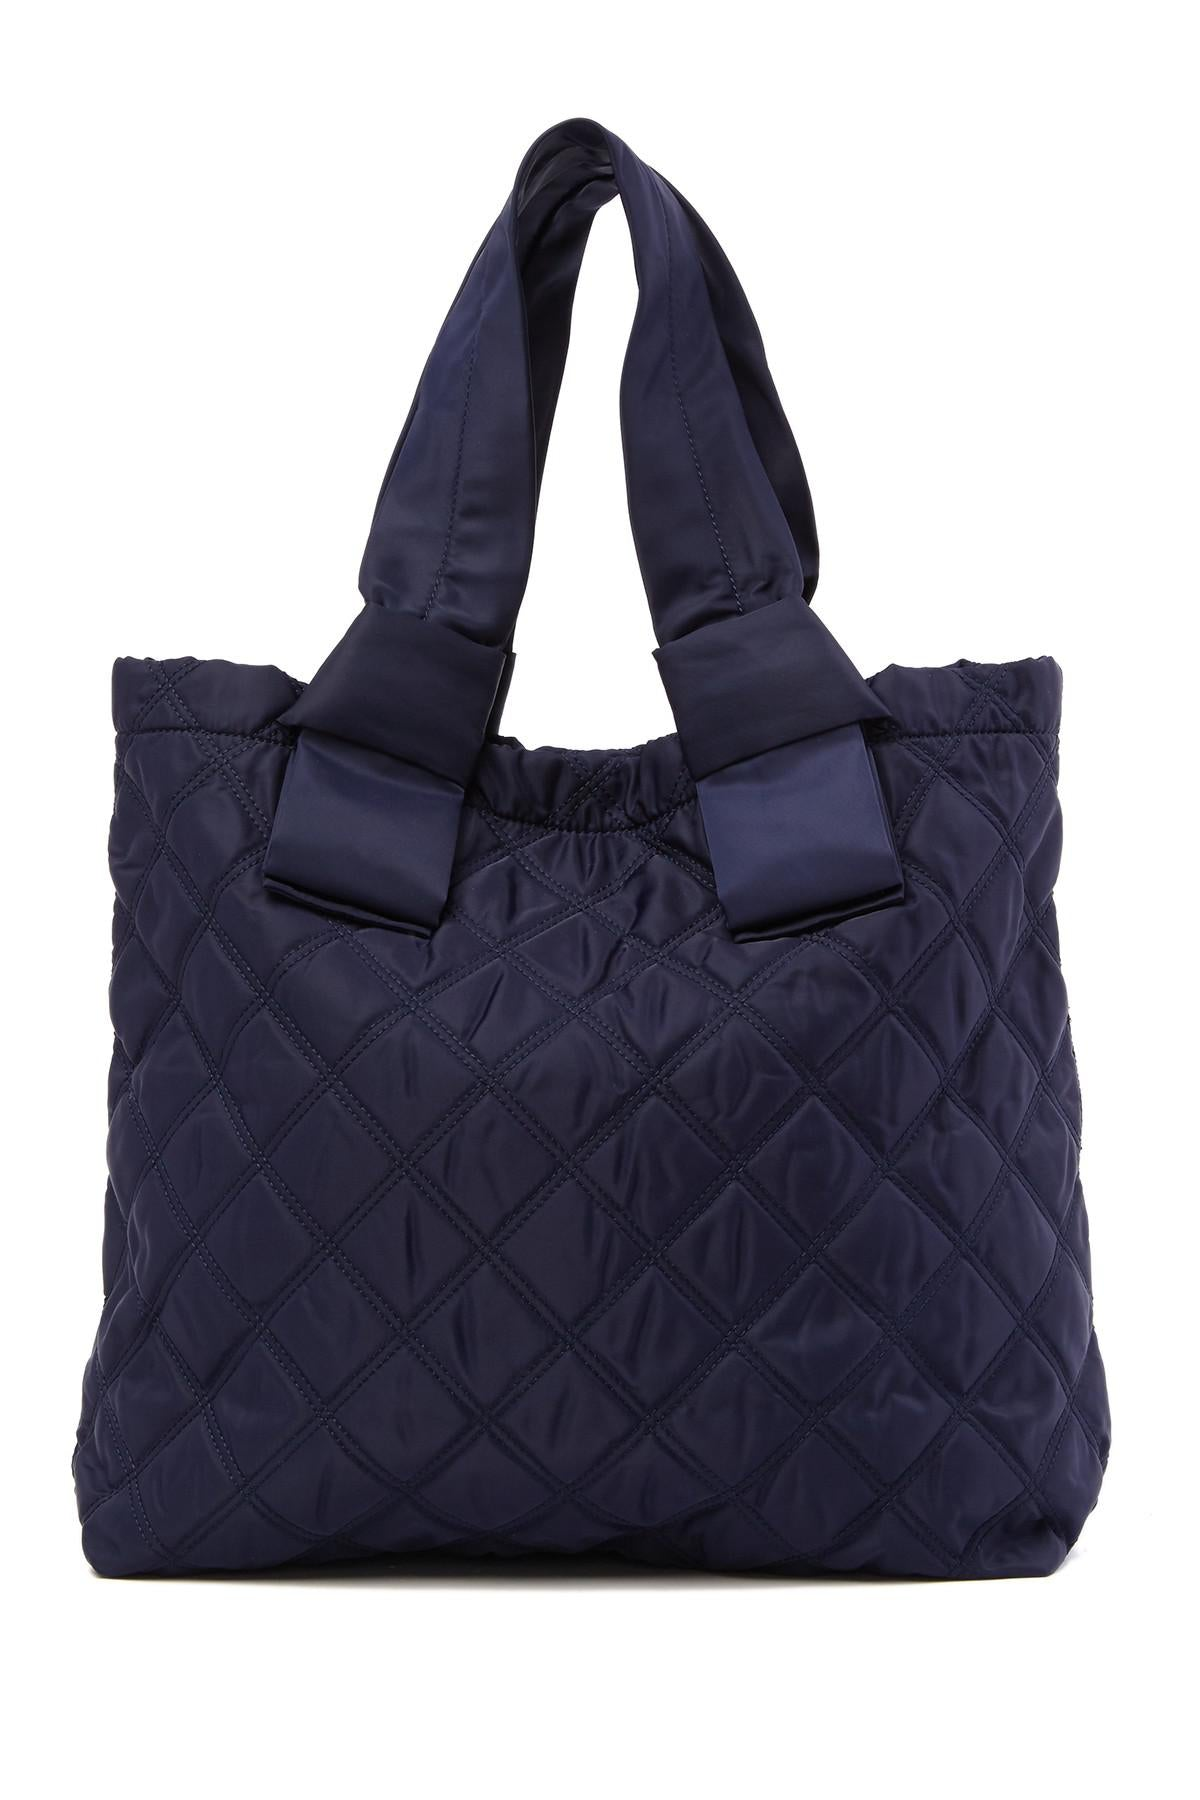 Diamond Bag Tote Us Follow Marc Quilted – Jacobs ru QderCBoxW